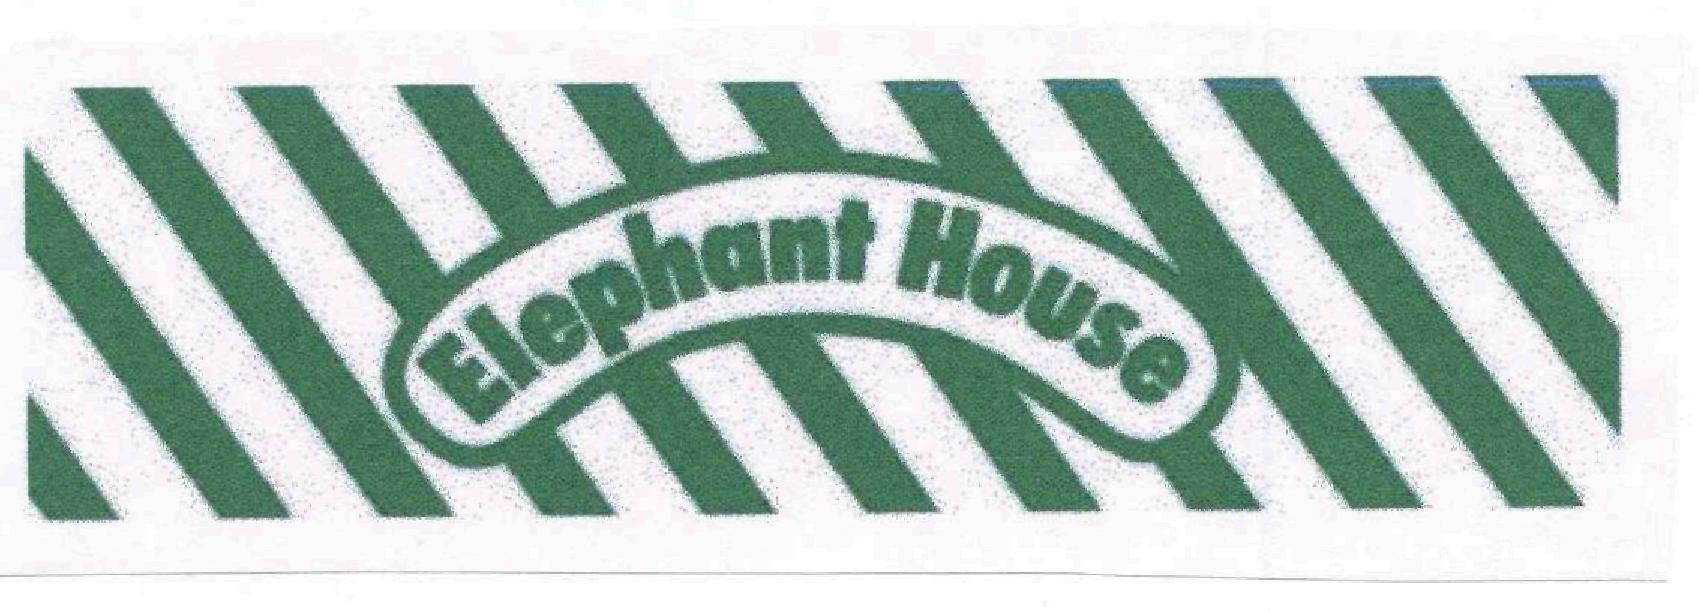 Elephant house (LABEL)